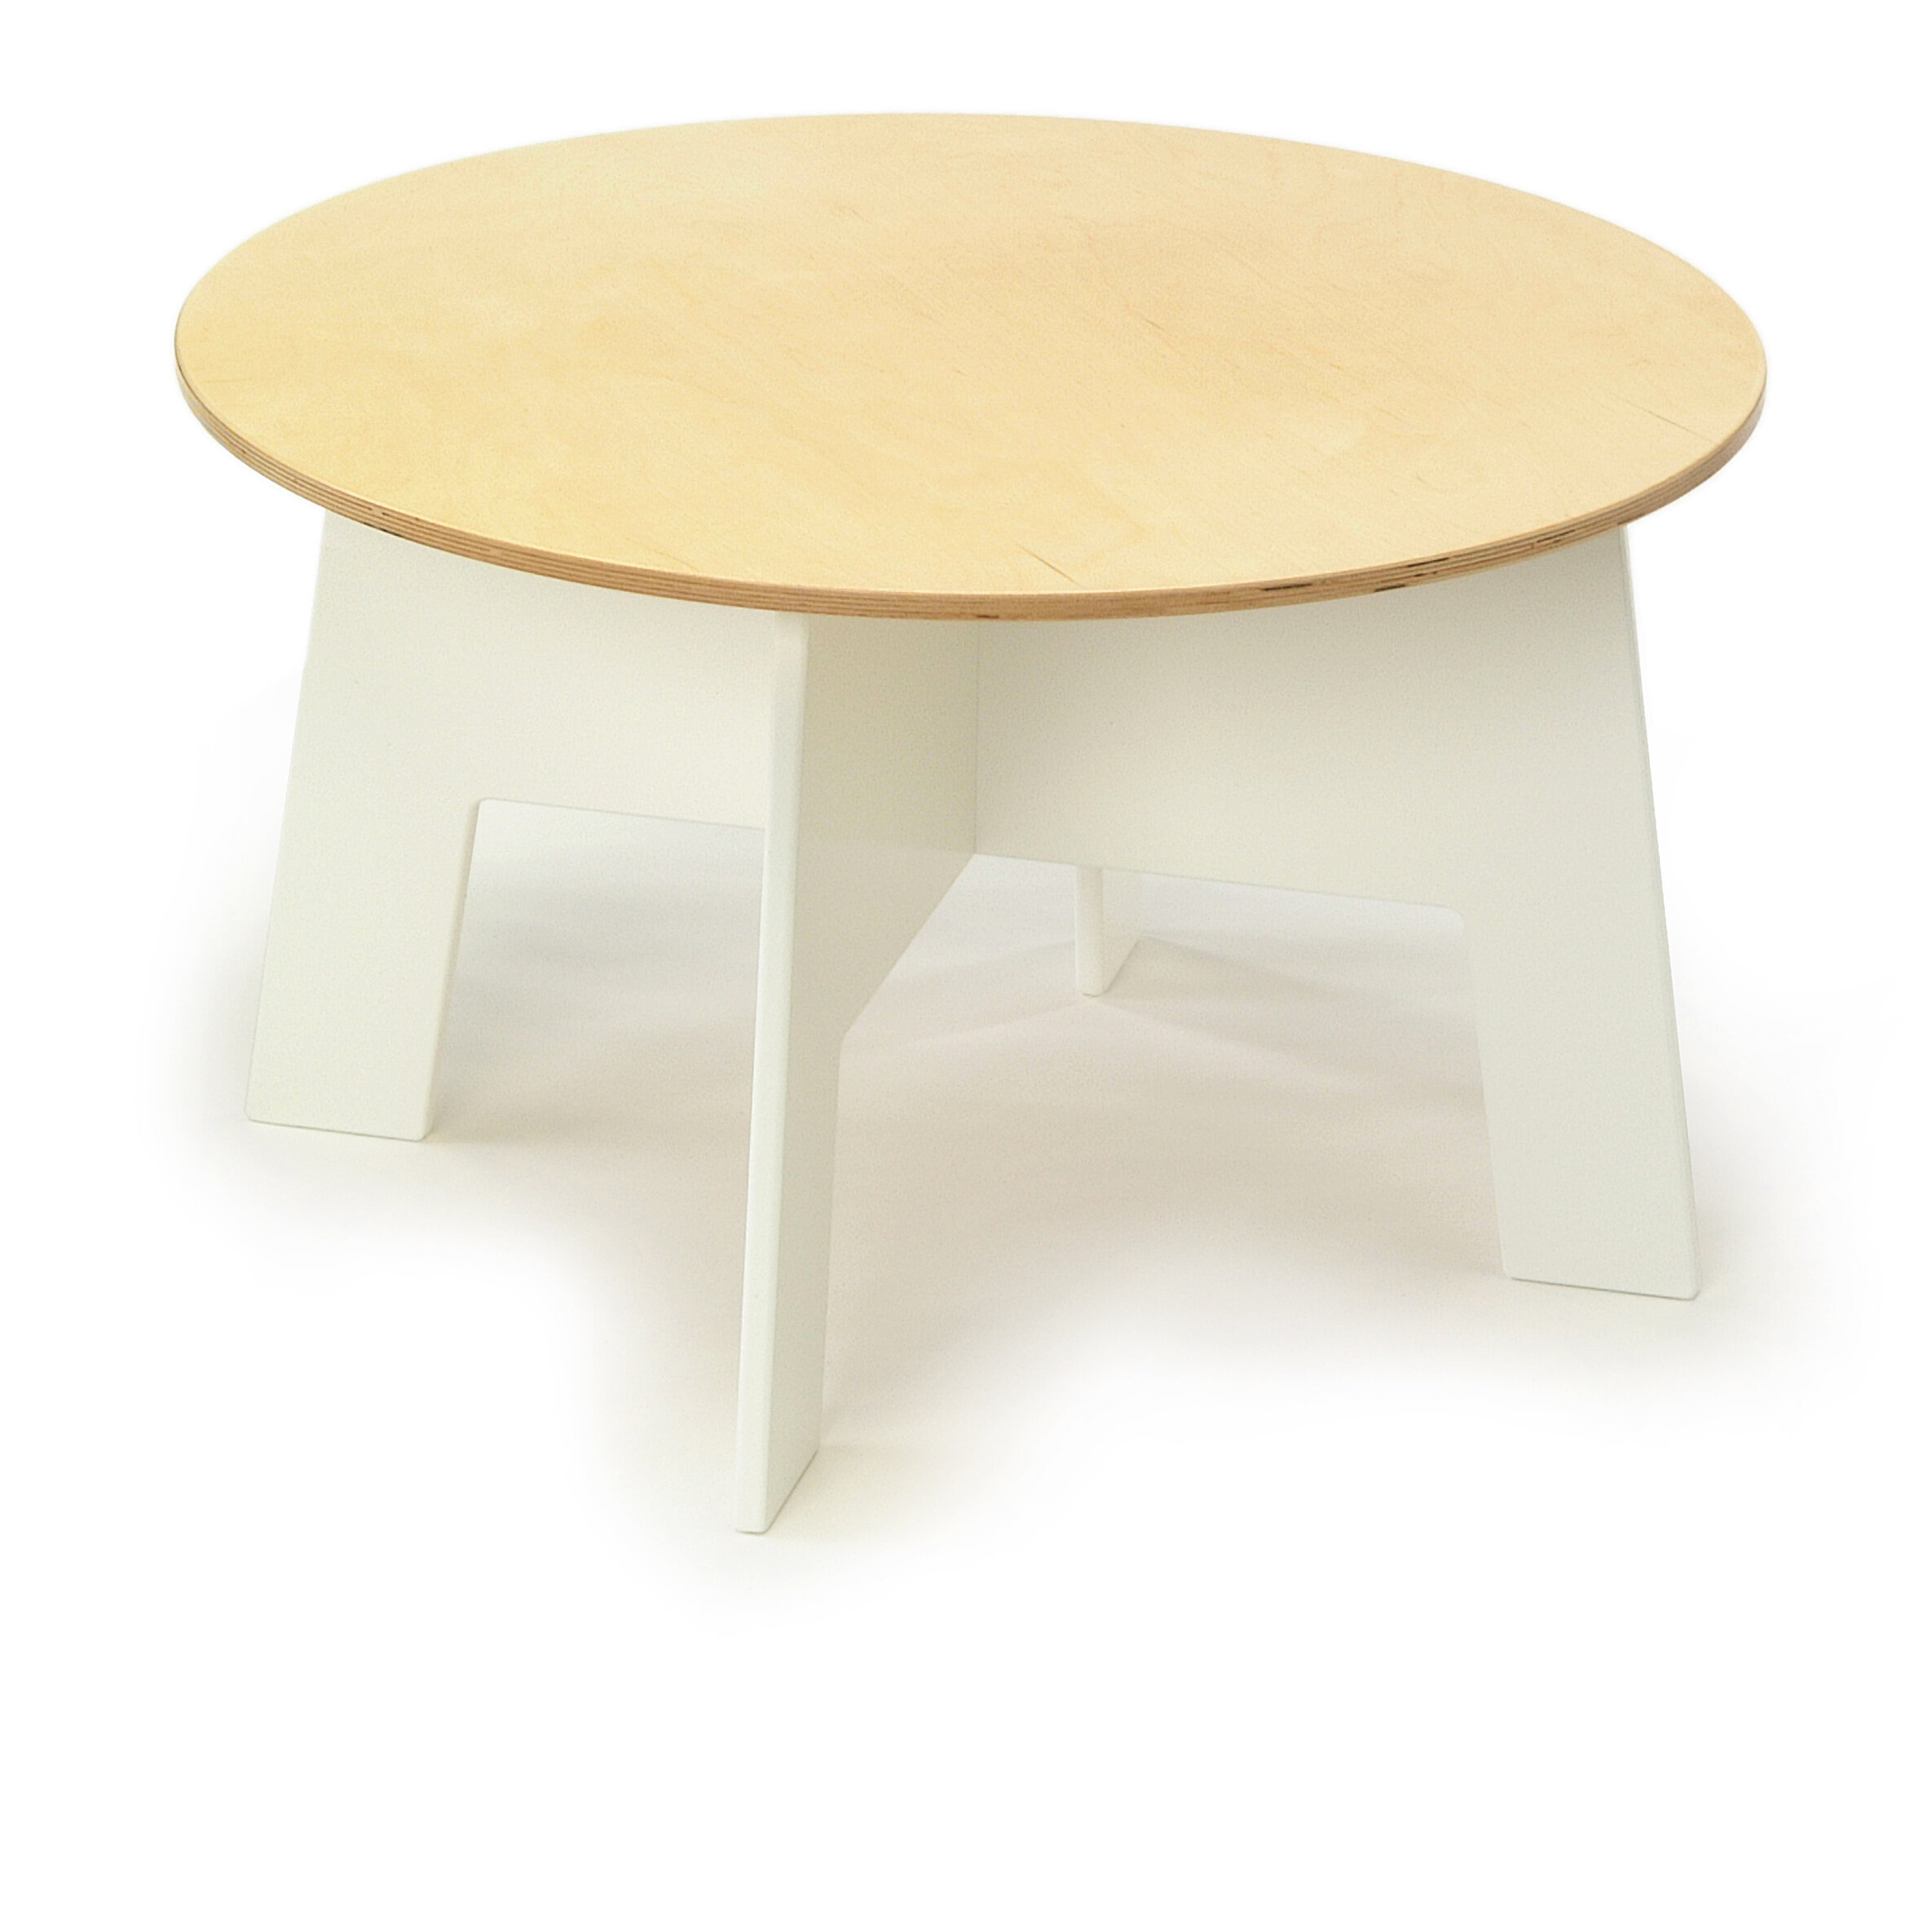 Attirant Offi Kidsu0027 Play A Round Table | Wayfair